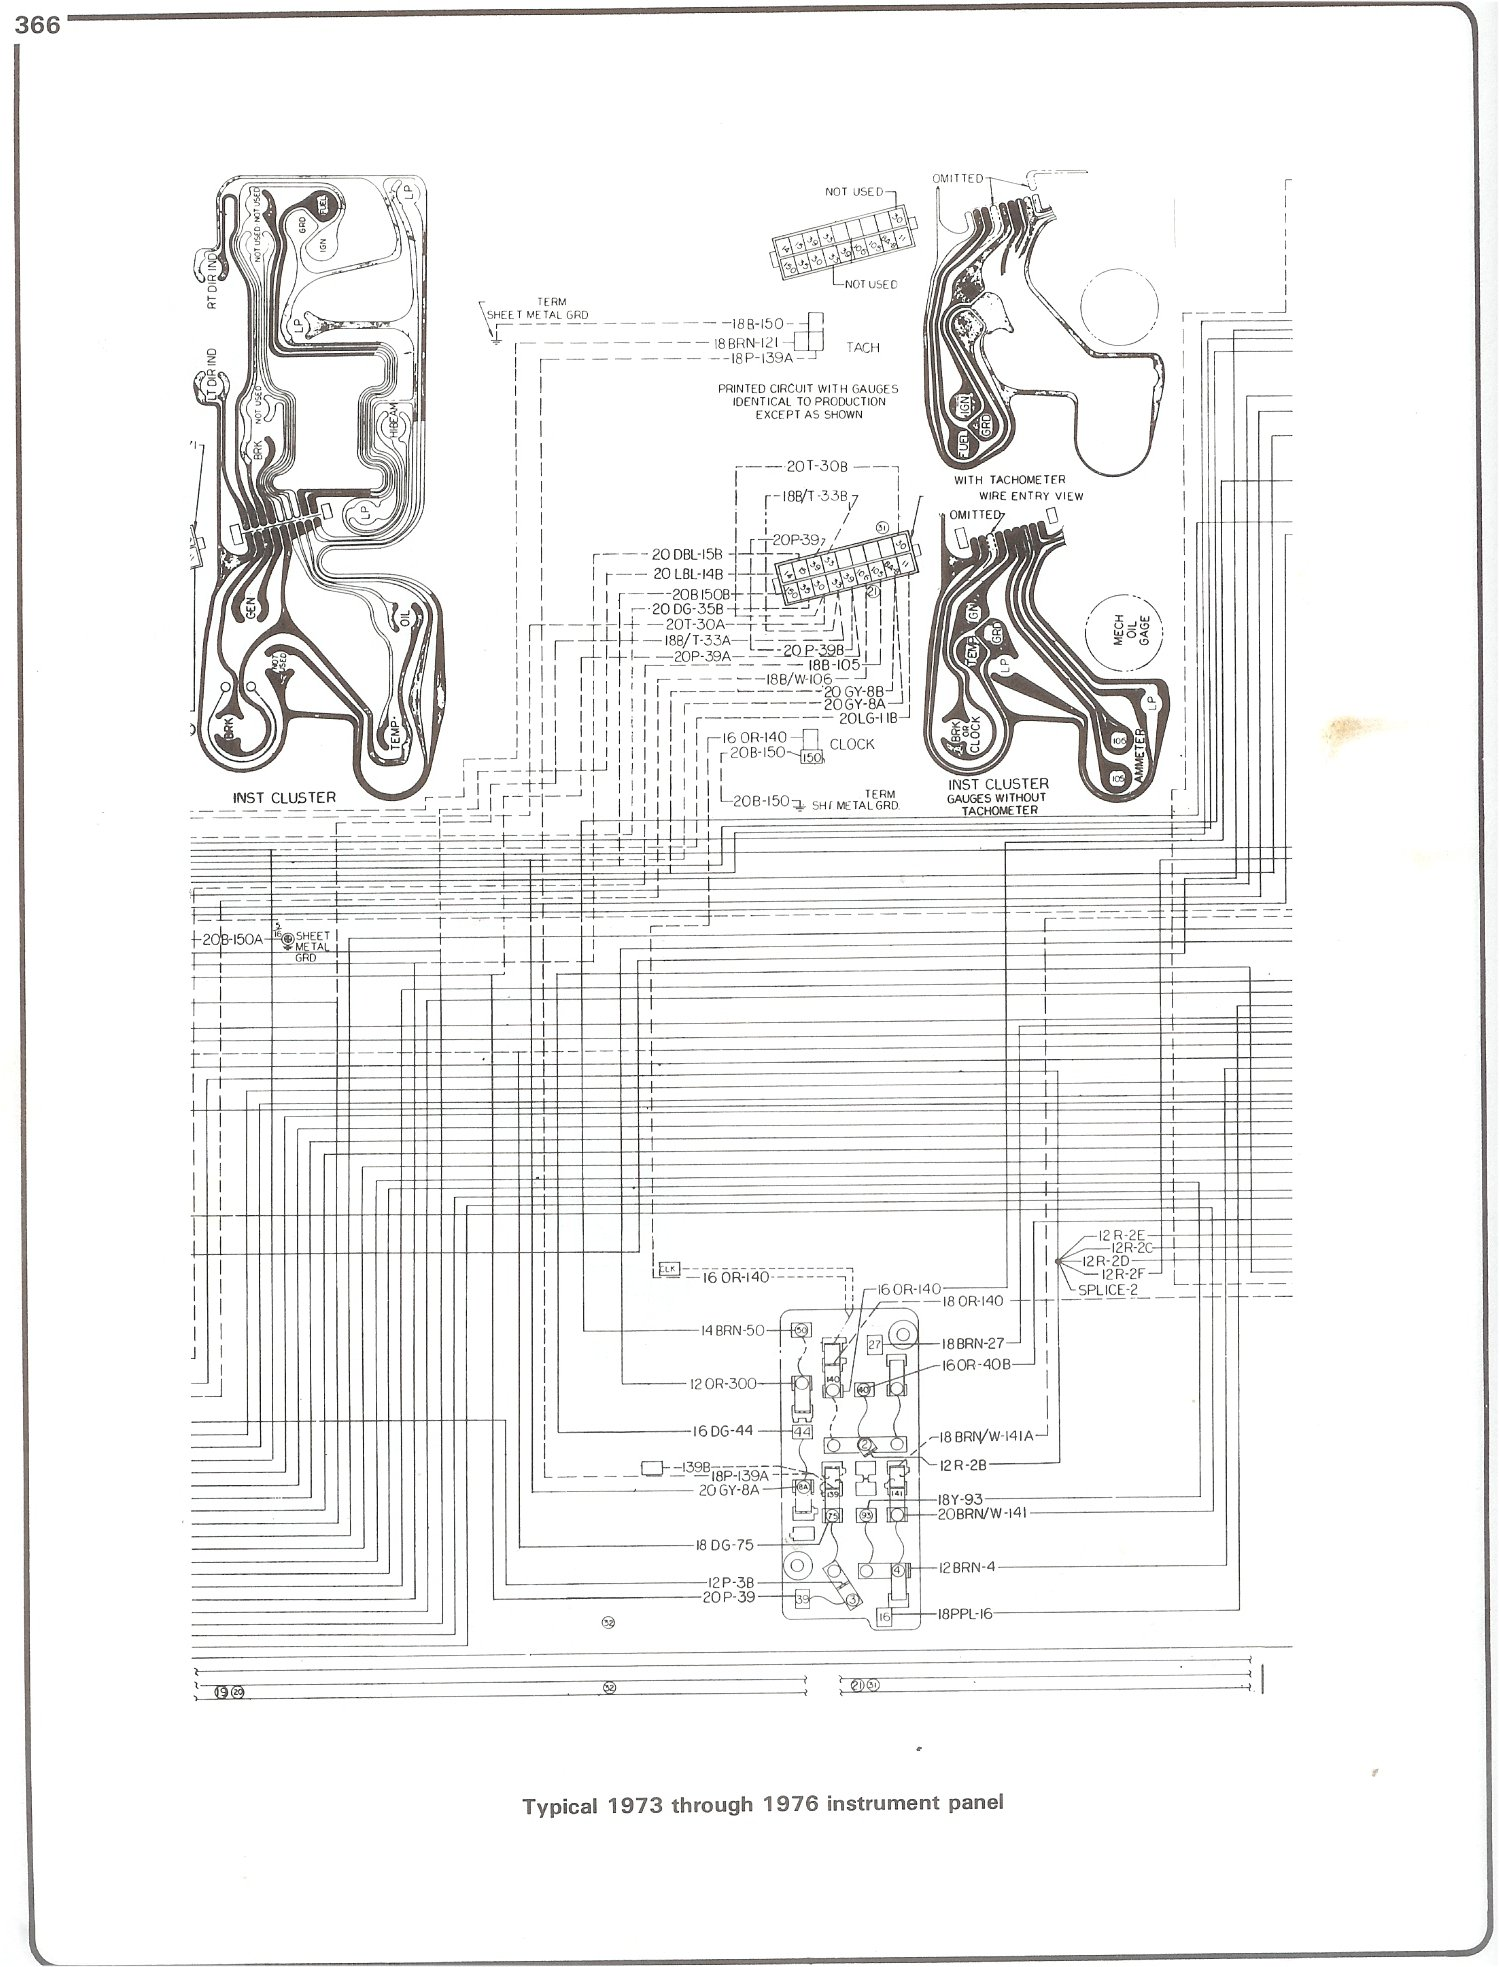 73 76_instrument 82 chevy c10 fuse box diagram 2001 chevy silverado fuse box 1984 chevy truck fuse box at n-0.co